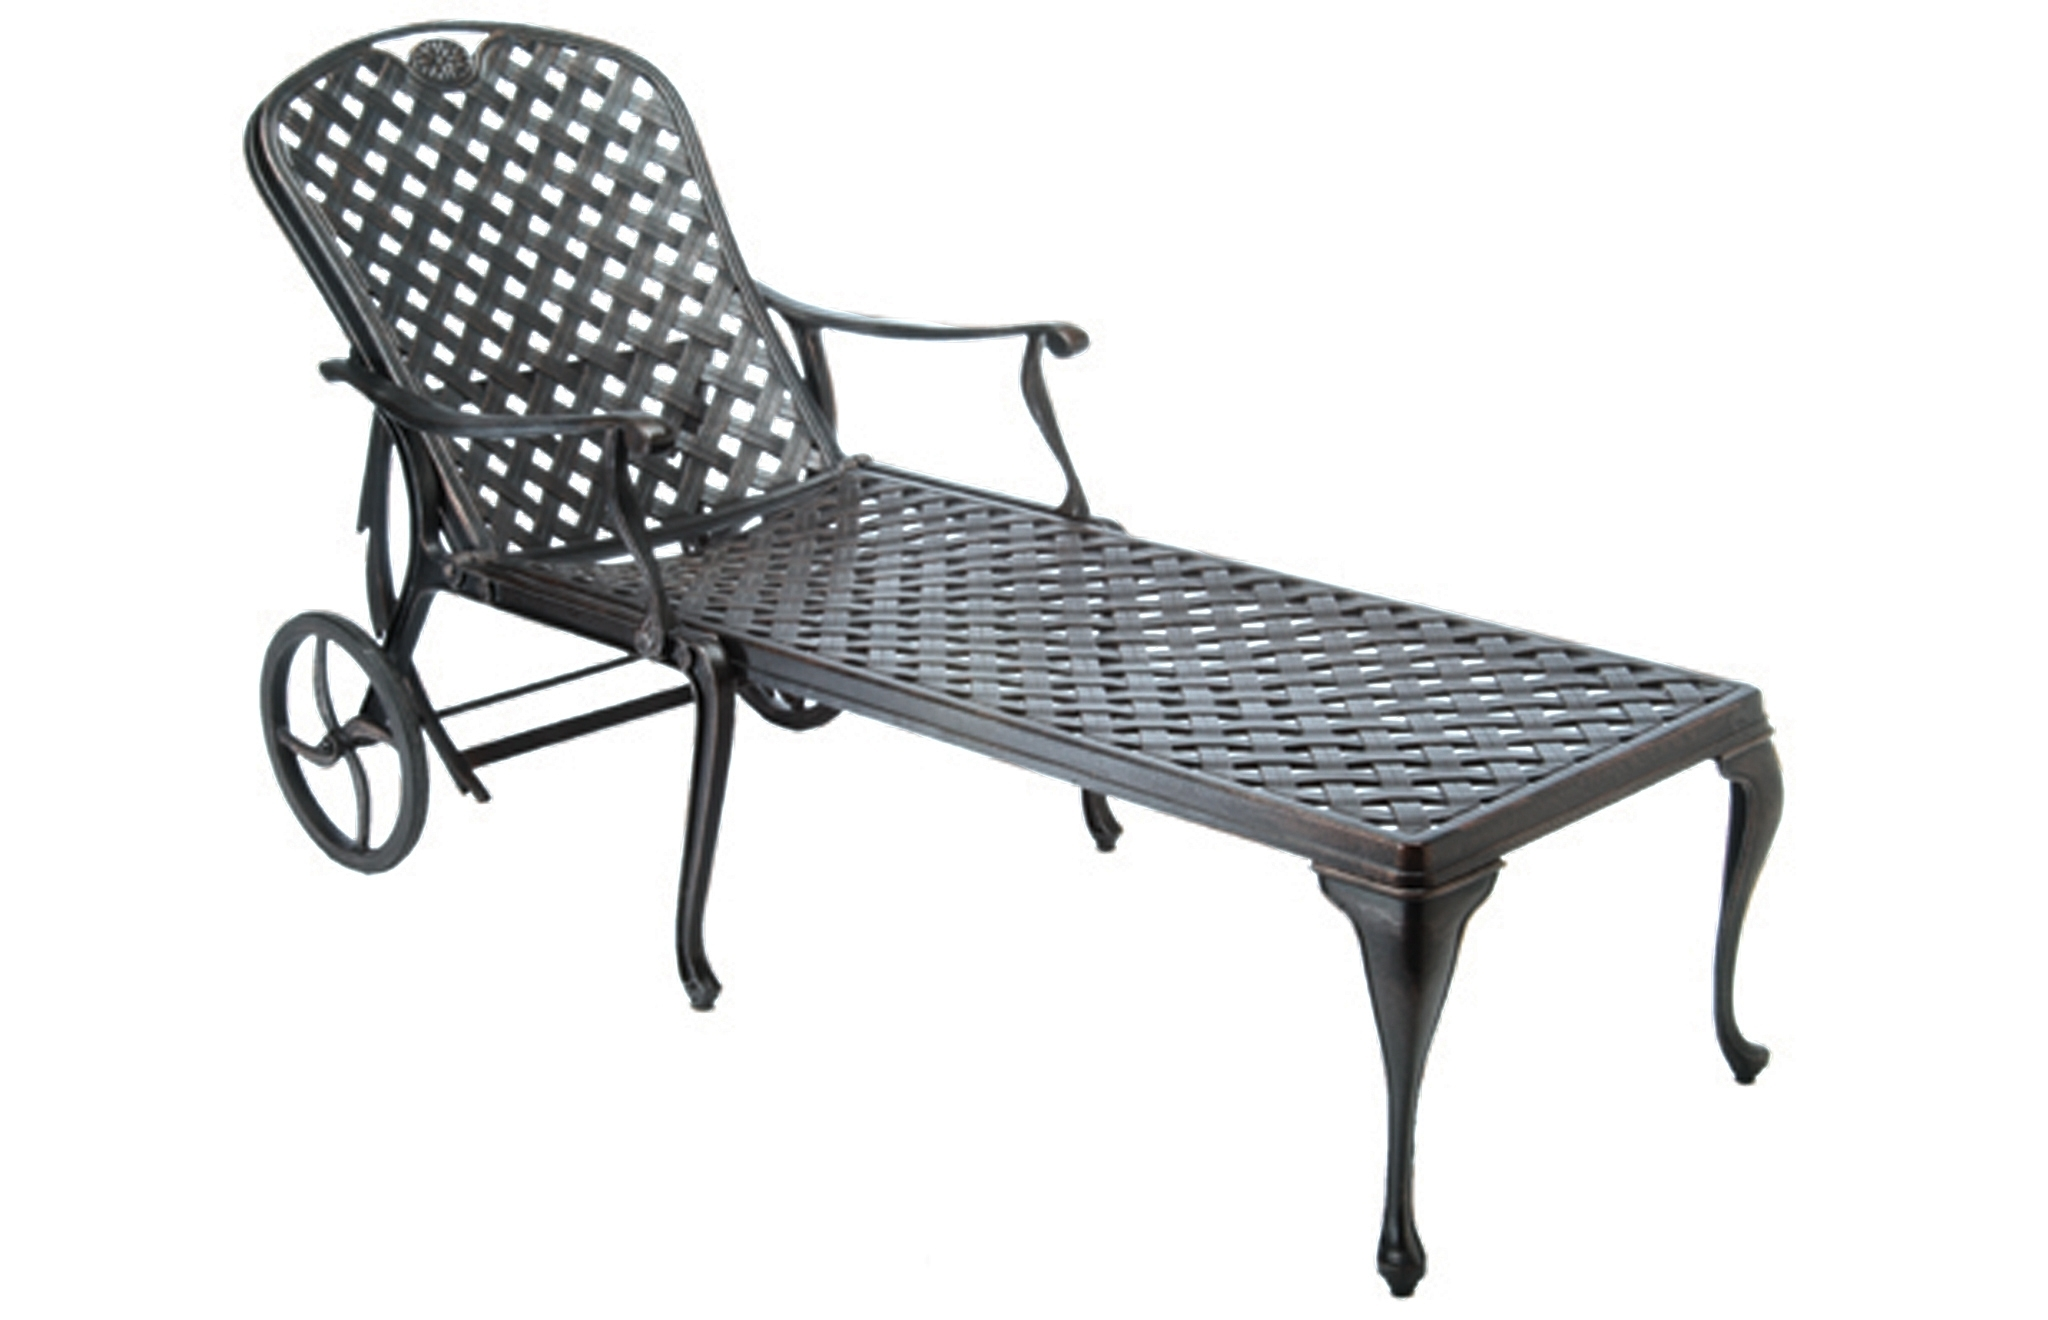 Best And Newest Fall: The Best Season For Entertaining With Outdoor Furniture Inside Cast Aluminum Chaise Lounges With Wheels (View 7 of 15)